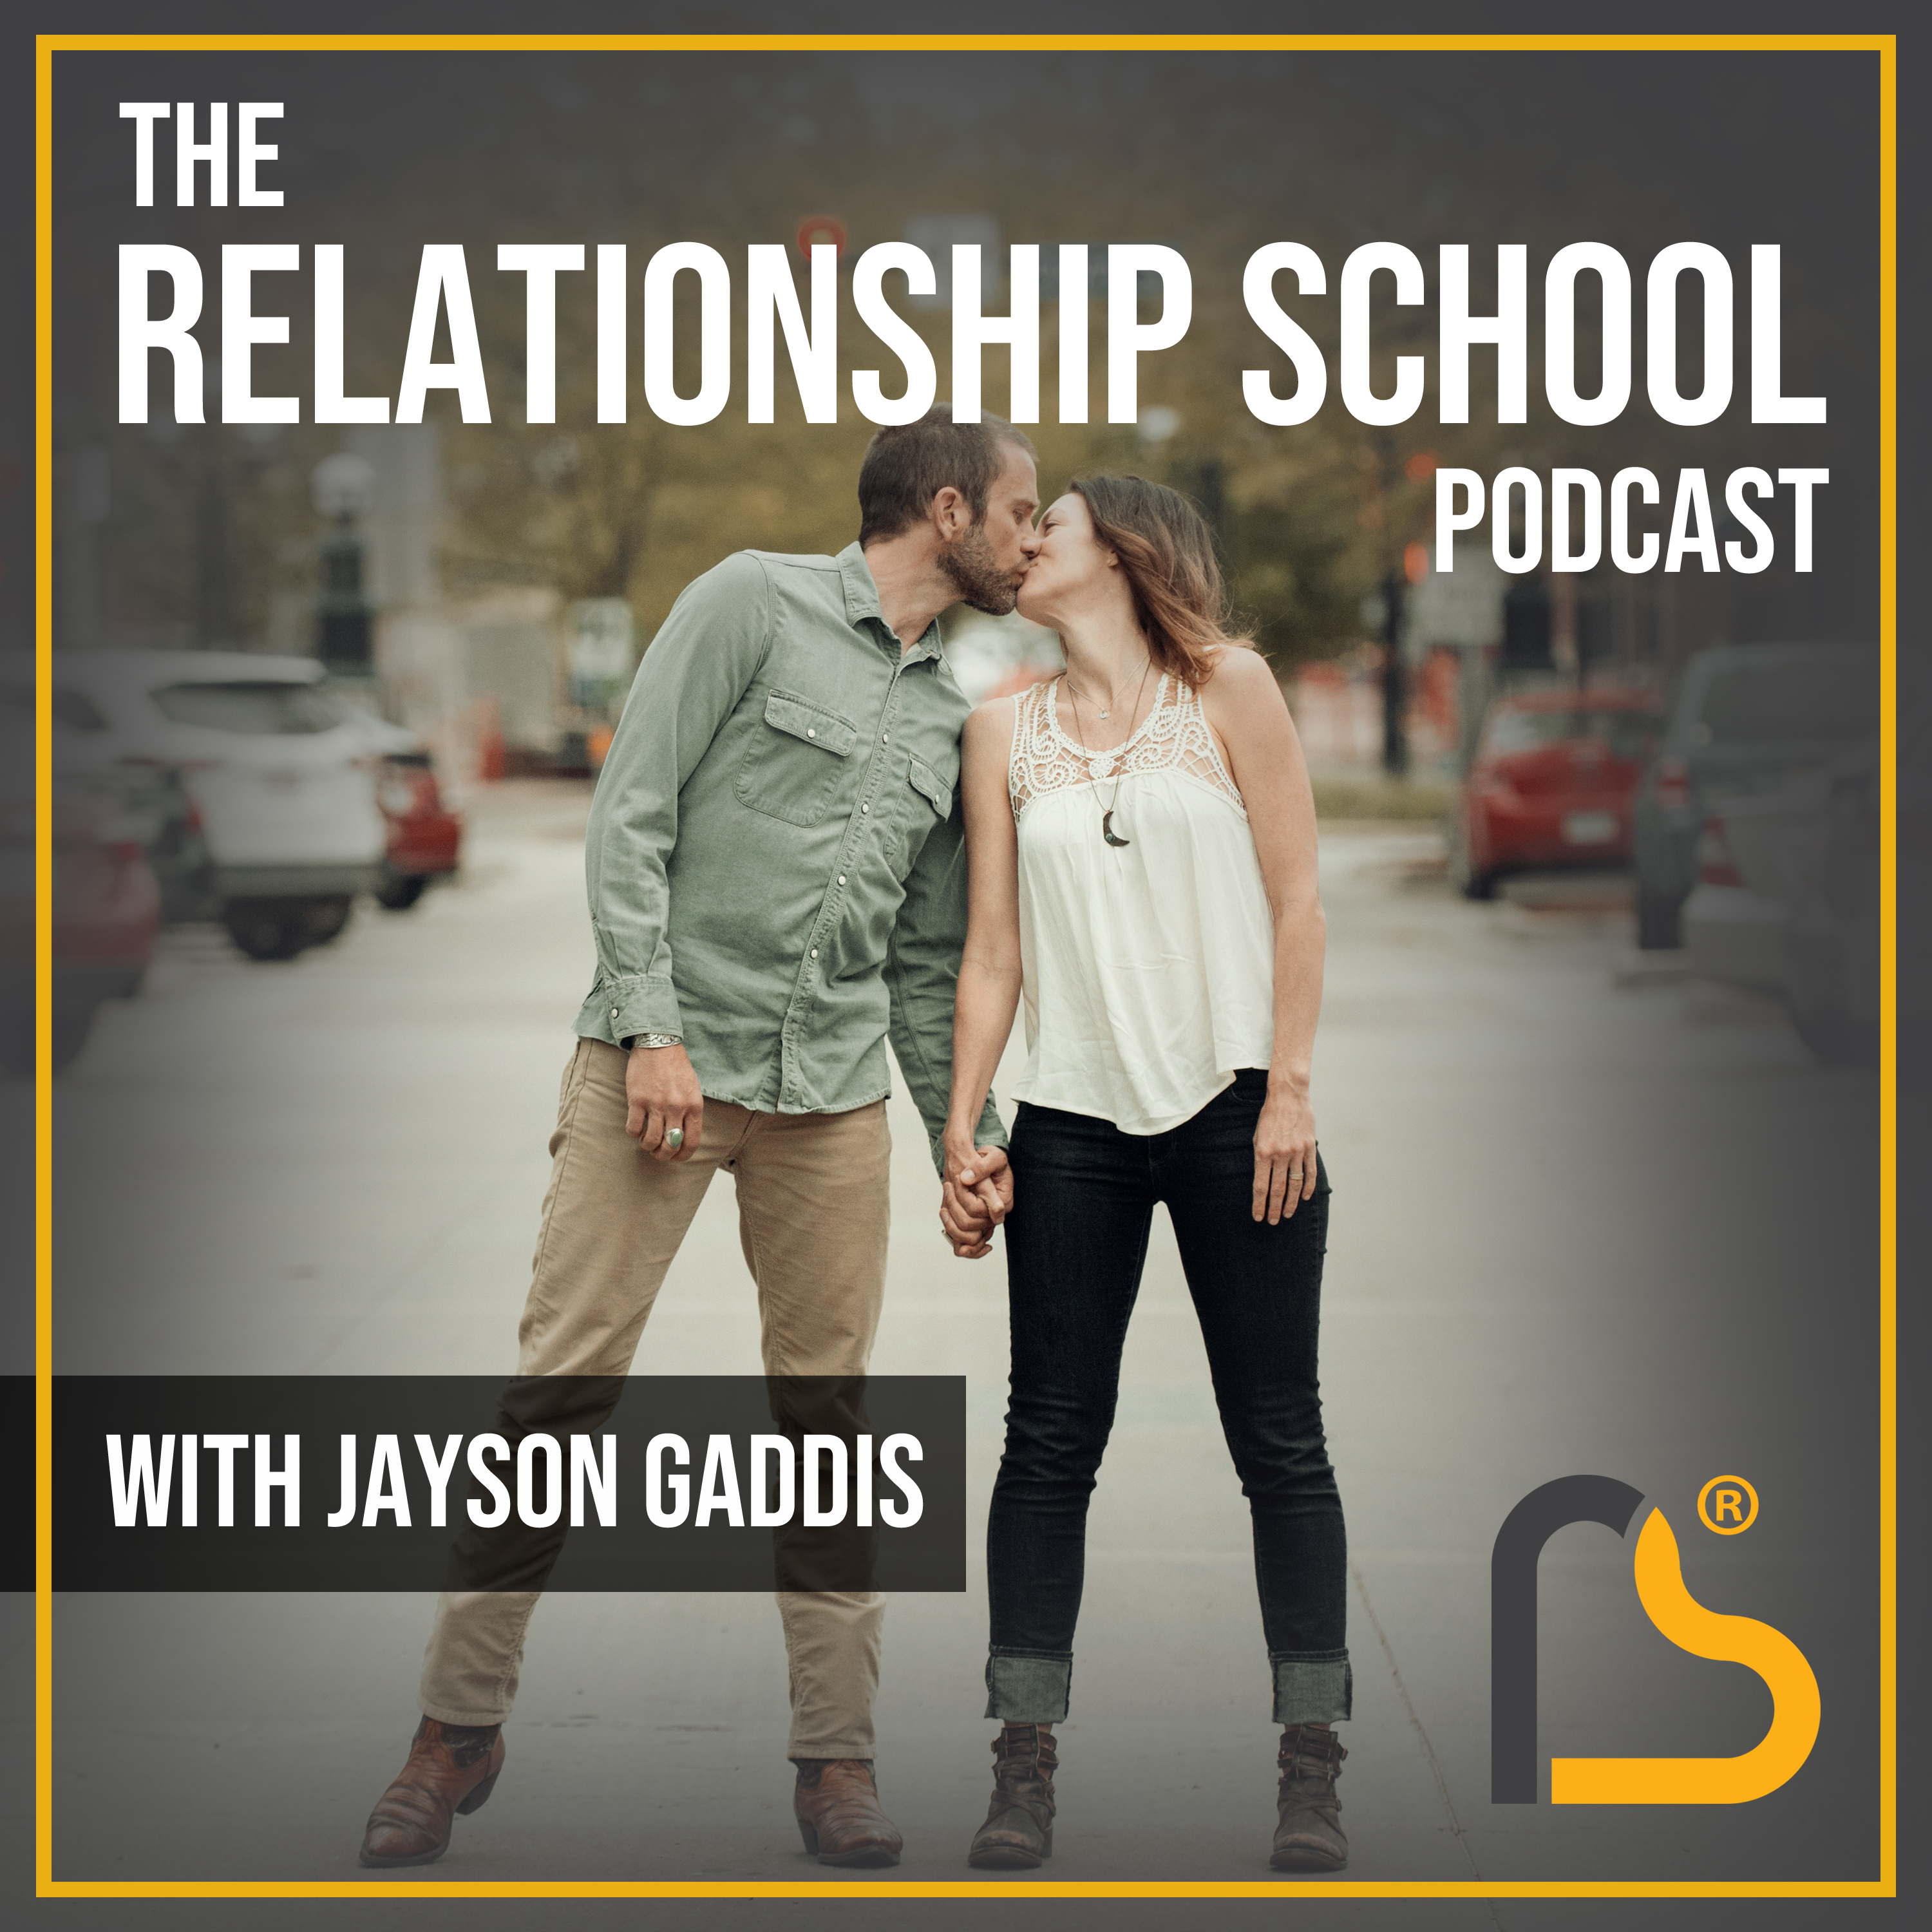 The Relationship School Podcast - Women's Sexuality & Nervous System Post Birth, Trauma and #Metoo - Relationship School Podcast EPISODE 249